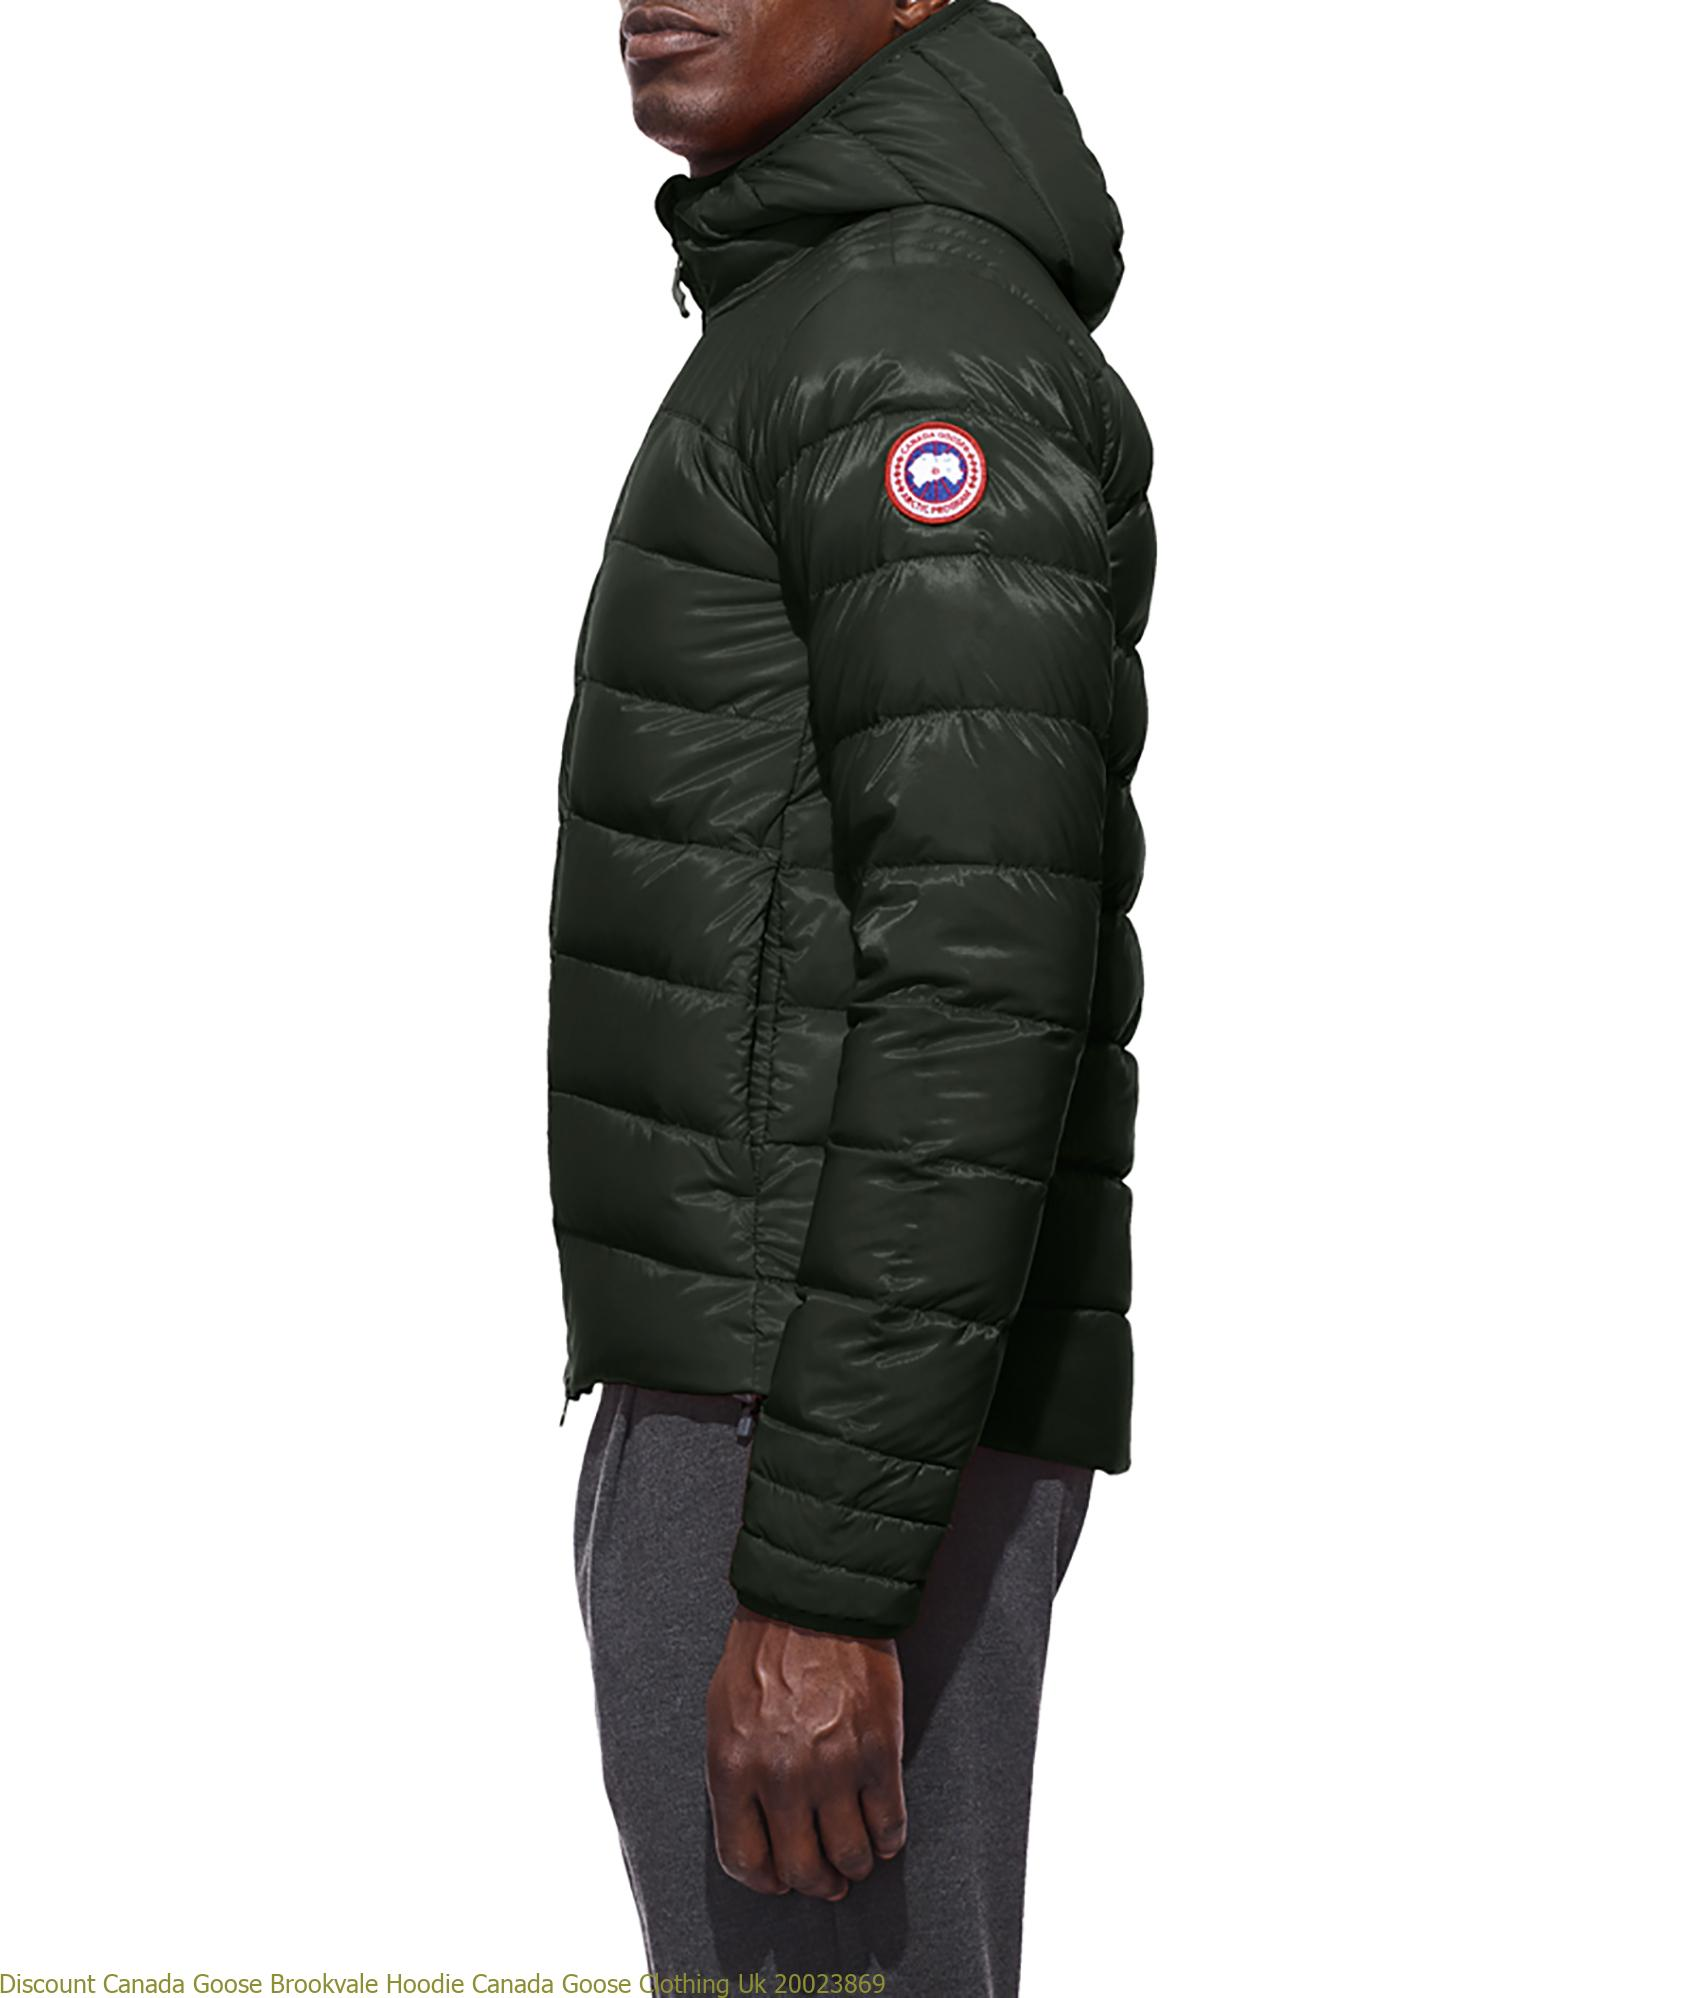 1ac0193f446 Discount Canada Goose Brookvale Hoodie Canada Goose Clothing Uk 20023869 –  Cheap Canada Goose Jacket – 2019 Canada Goose Outlet Mall Store